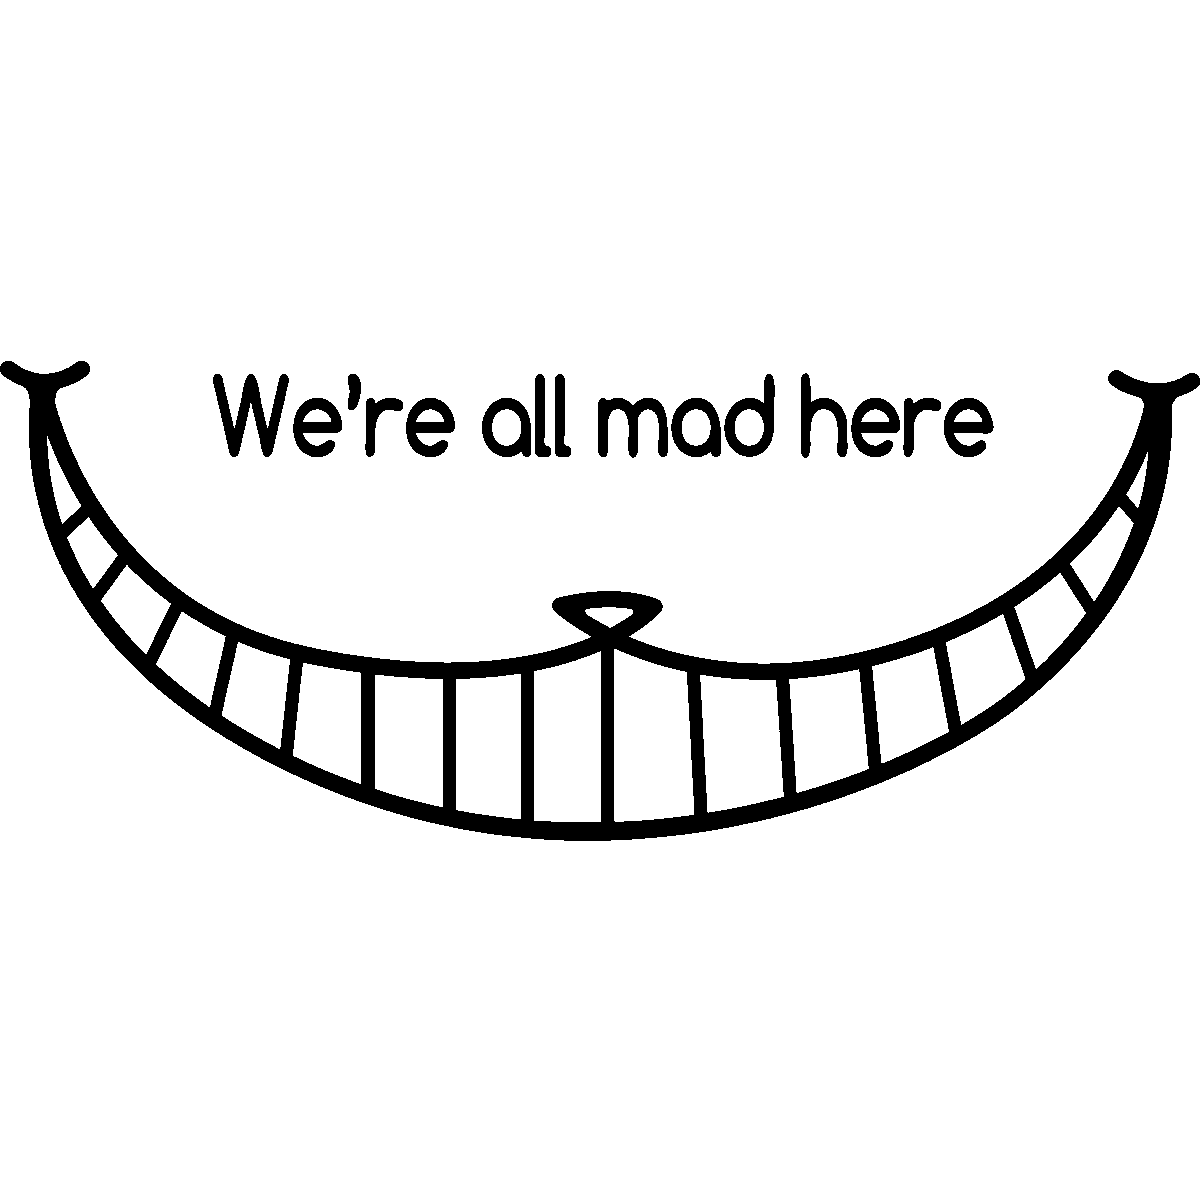 Cheshire cat smile png. Cheshirecatt pixels peyton s